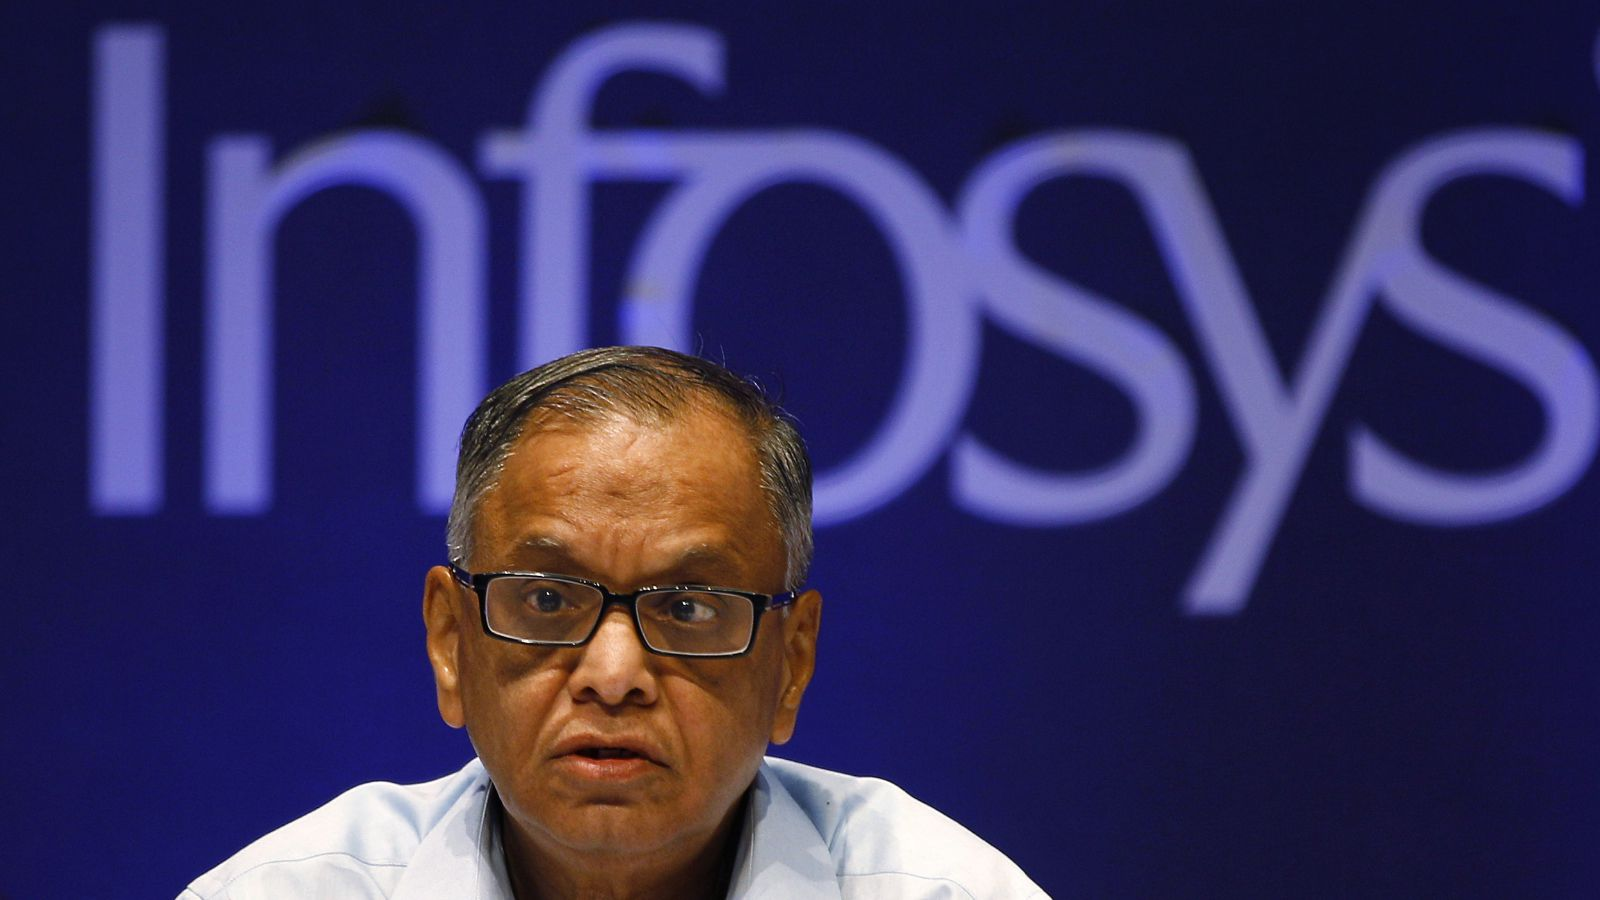 In this June 15, 2013 file photo, Infosys Executive Chairman N. R. Narayana Murthy reacts to a shareholders comment during the company's 32th Annual General Meeting in Bangalore, India. In 2013 Infosys was accused of bringing thousands of foreign workers to the United States using incorrect visas, but denied any allegations as part of the settlement reached with a $34 million settlement in Texas.